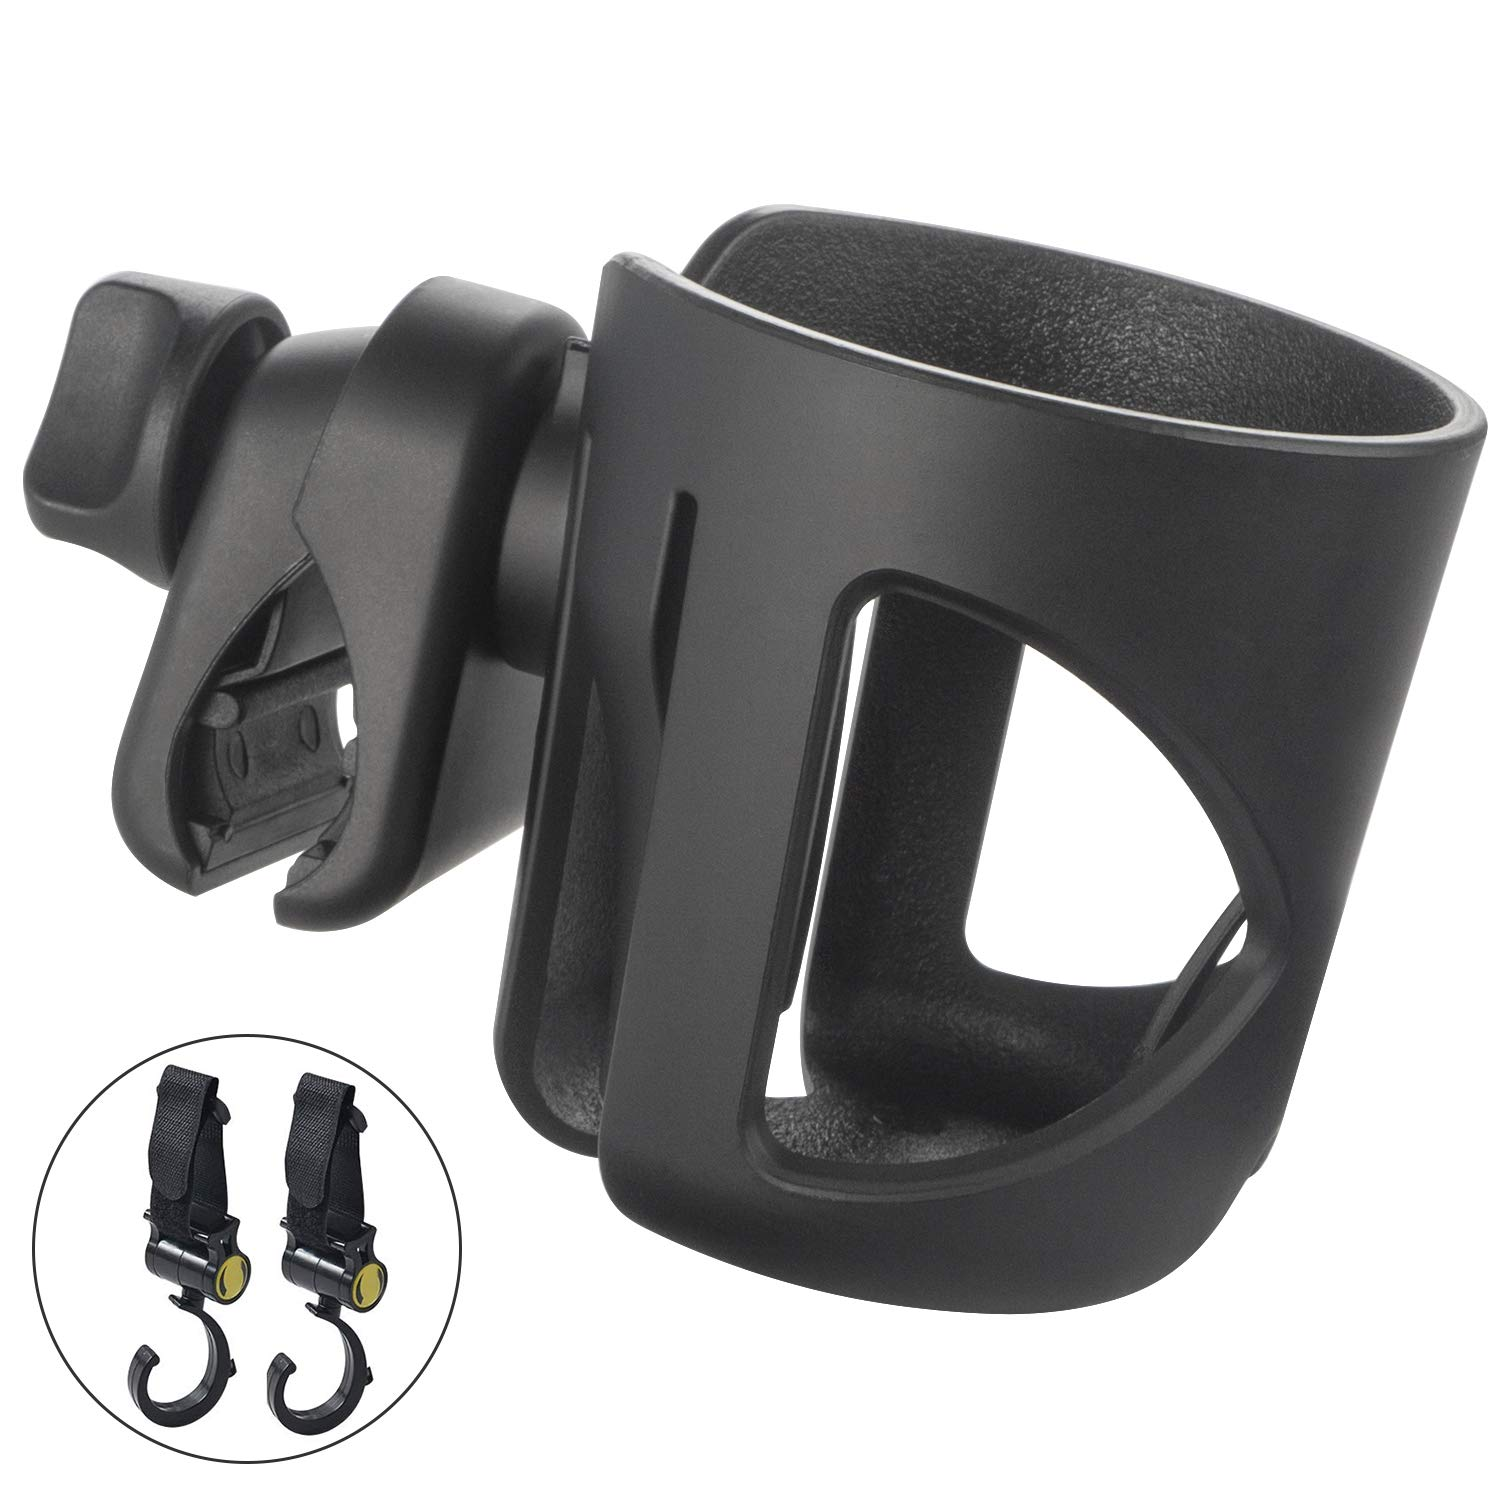 Stroller Cup Holder, Universal Baby Bottle Holder with Hook, Large Caliber Designed Cup Holder, 360 Degrees Rotation Cup Drink Holder for Baby Stroller Bicycle Pushchair Wheelchair Motorcycle. (Black)